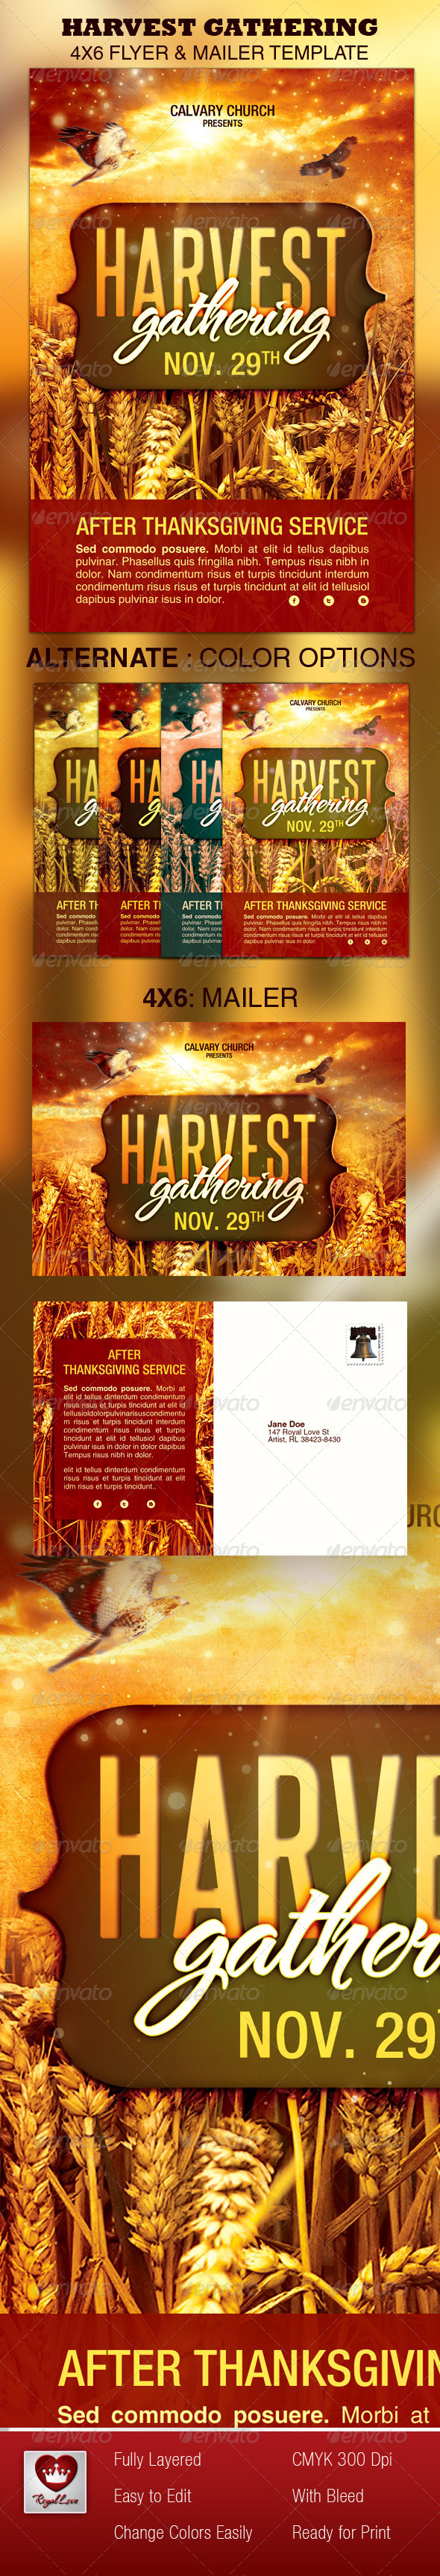 GraphicRiver Harvest Gathering Church Flyer & Mailer Template 3277120